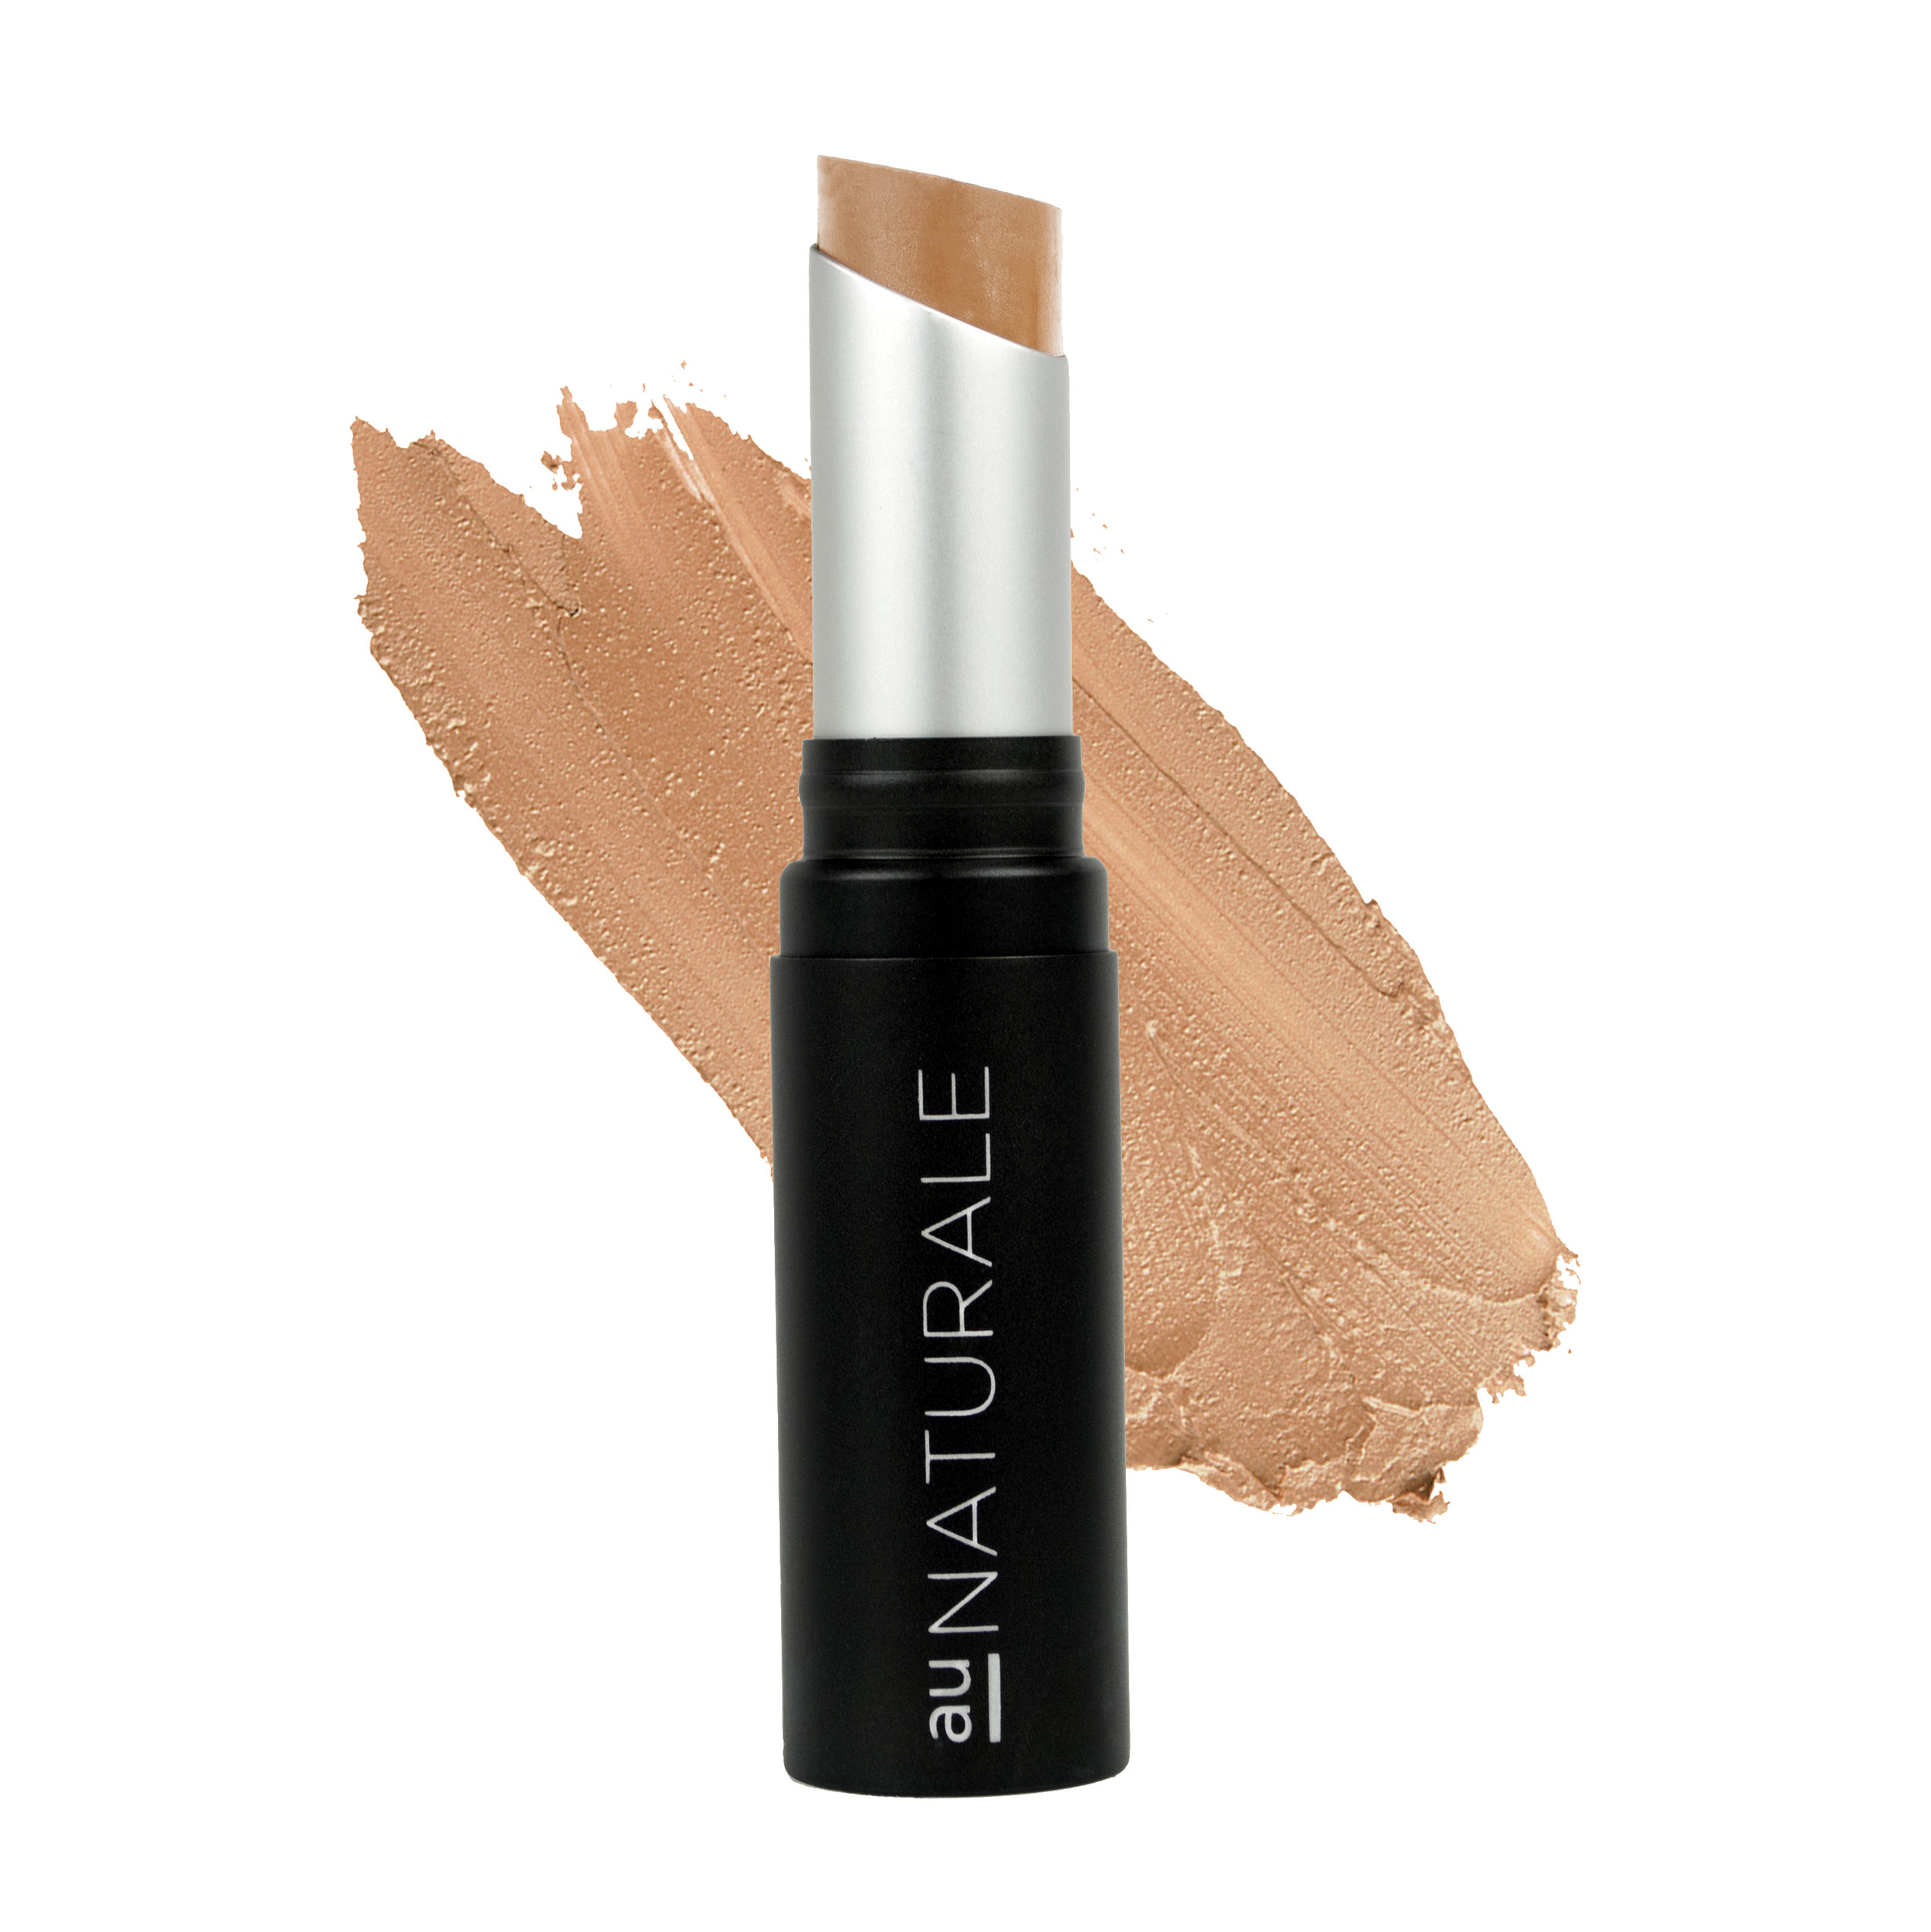 Malaga Completely Covered Creme Concealer